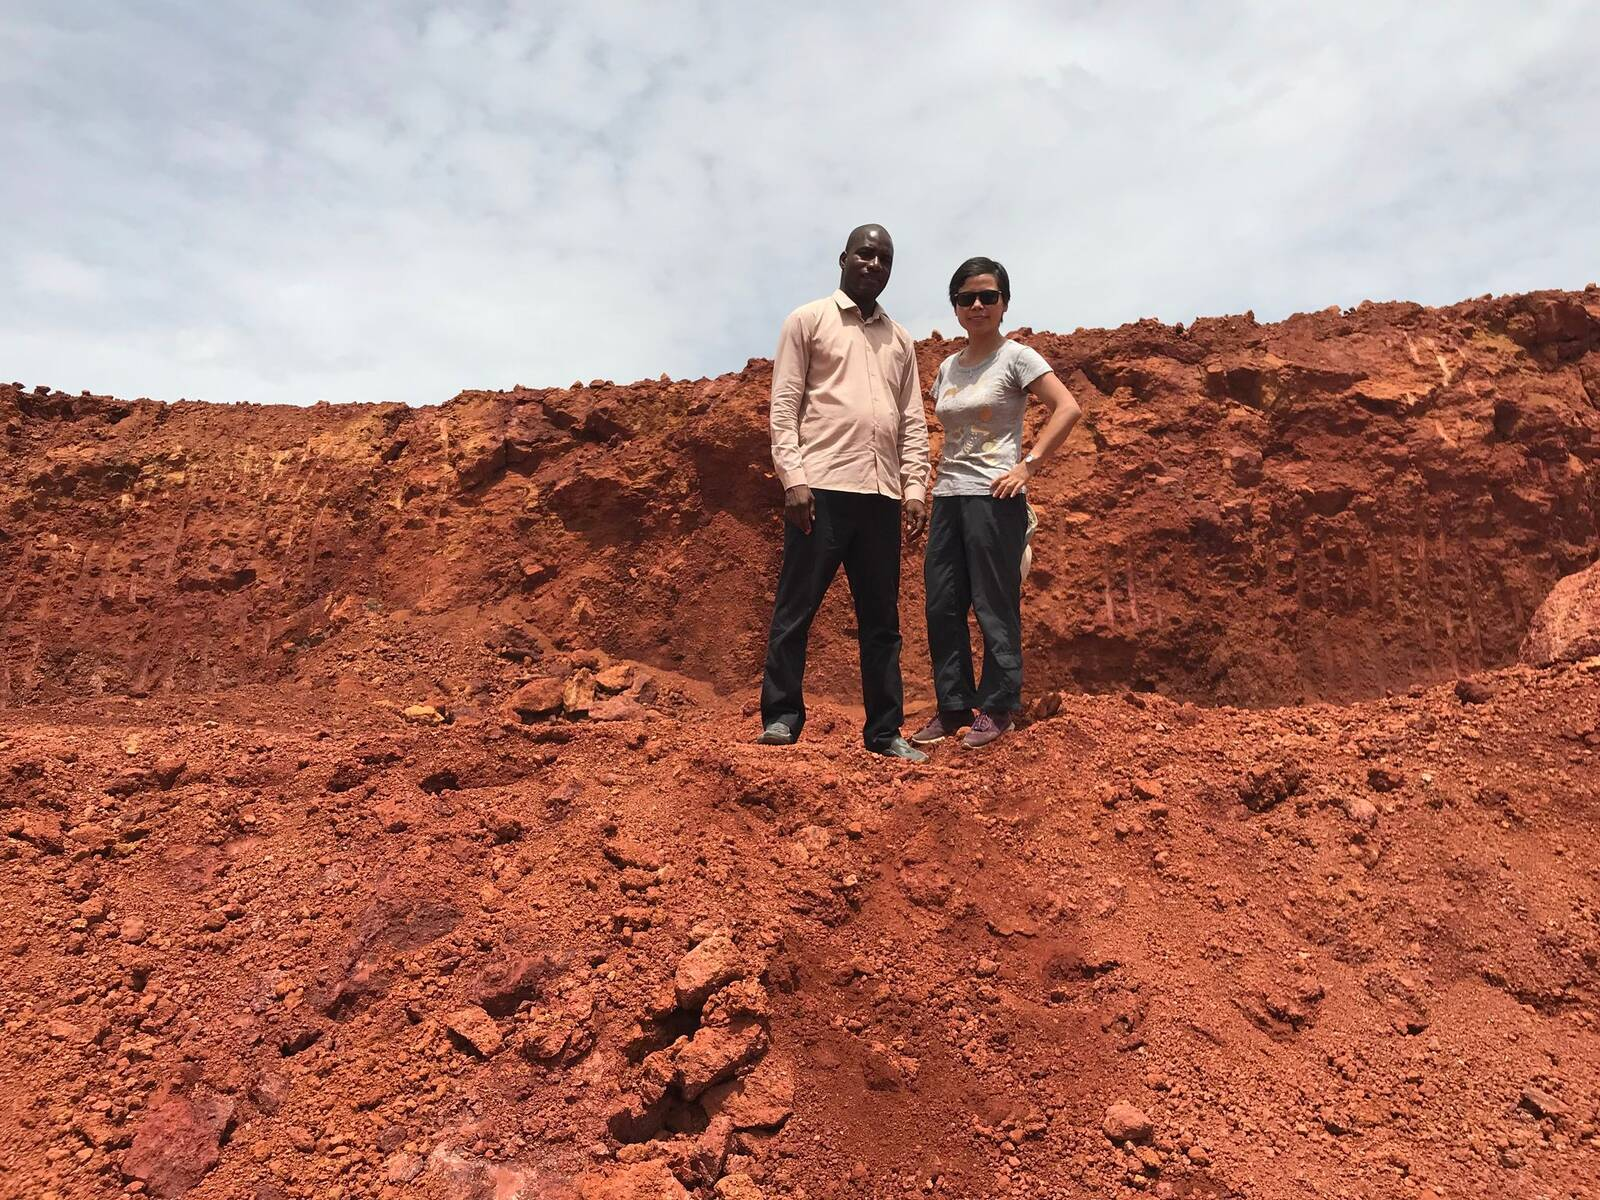 In Guinea, Zhang Jingjing works with Mamady Koivogui and other local environmentalists to decrease the pollution and social disruption caused by Chinese bauxite mining. Courtesy of Zhang Jingjing